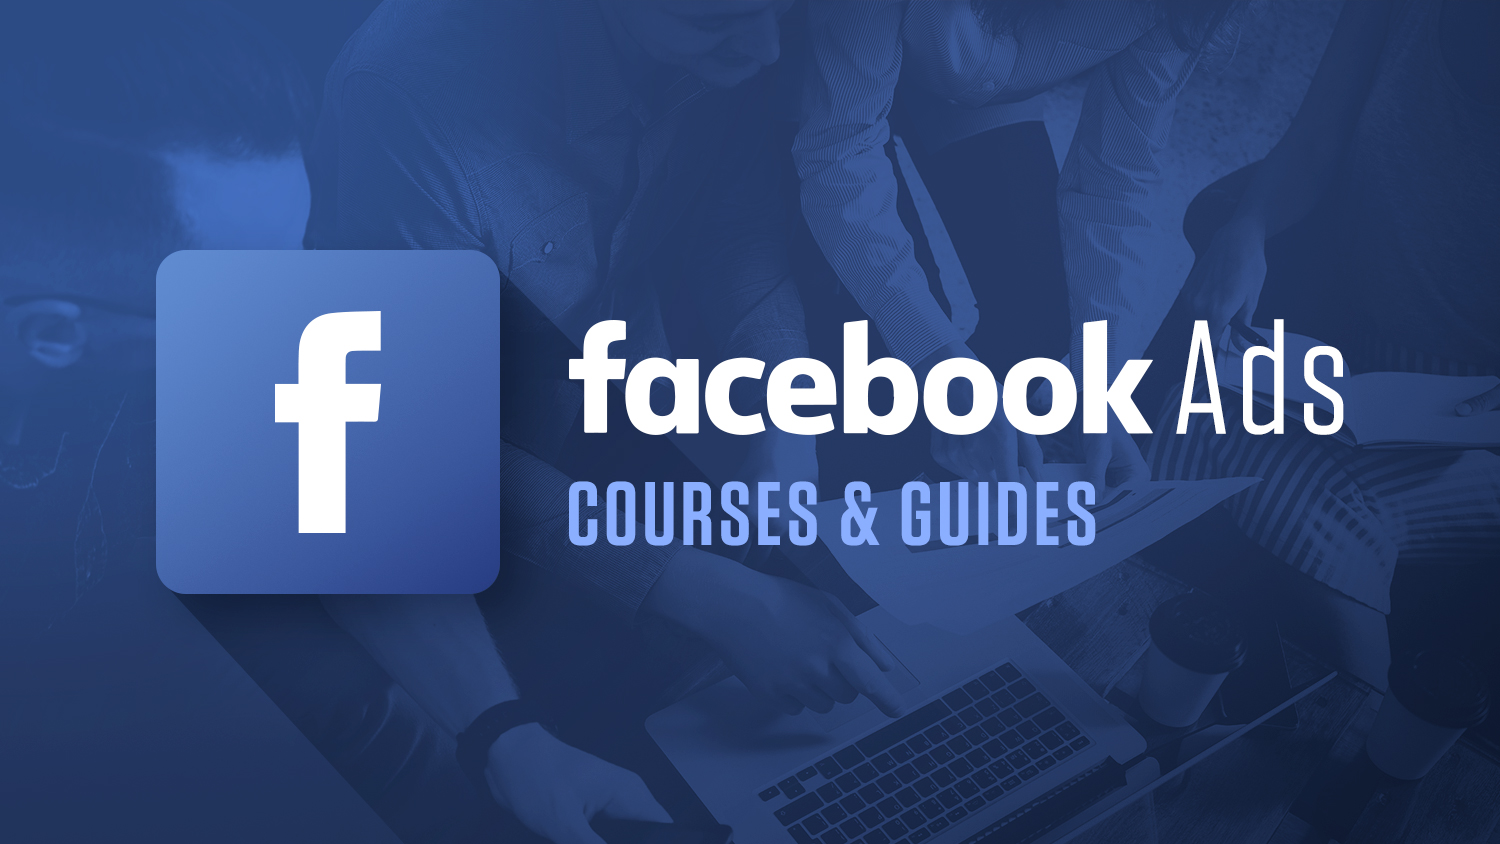 facebook-ads-courses.jpg